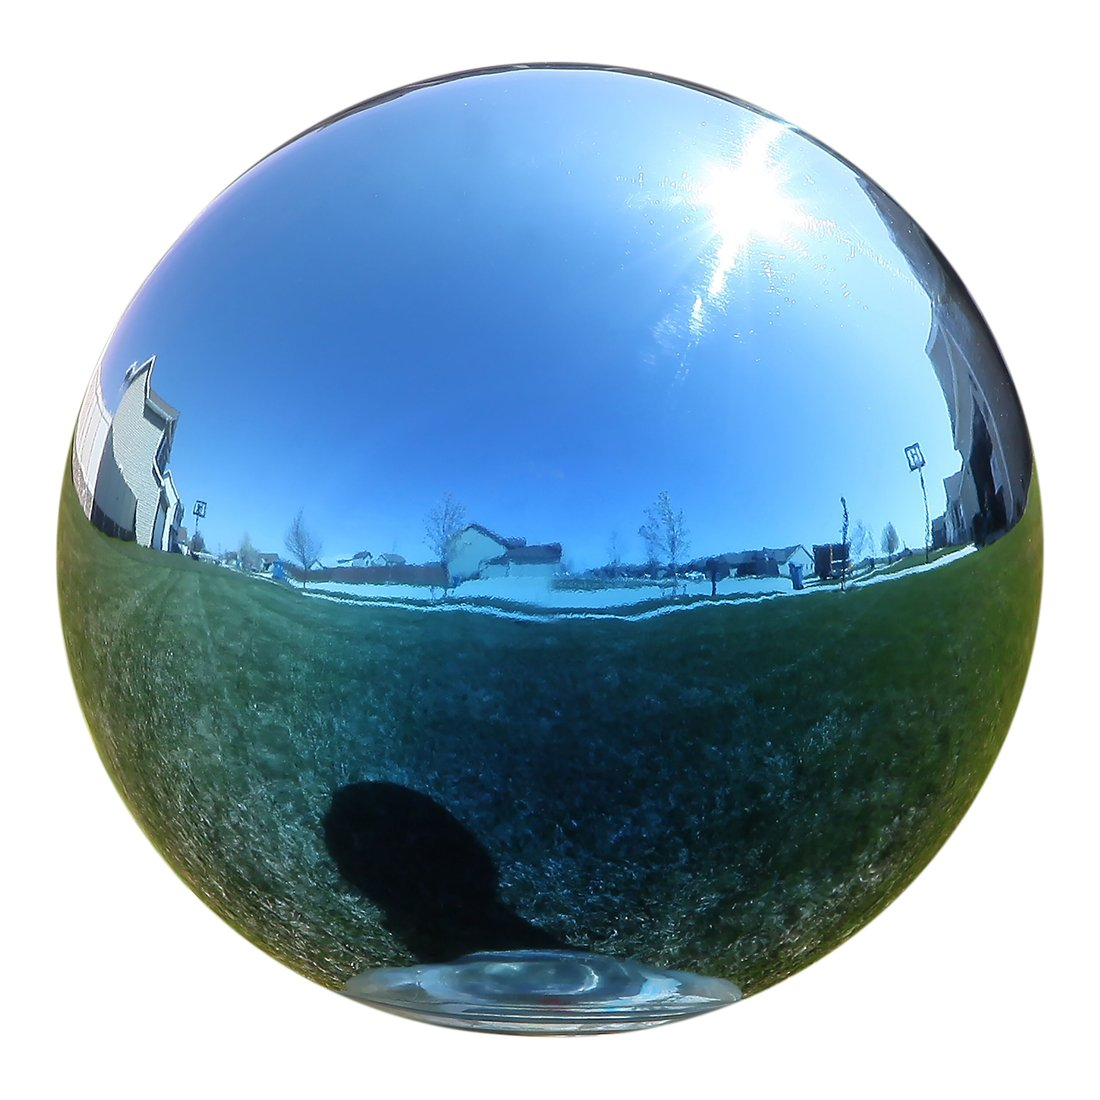 Lily's Home Gazing Globe Mirror Ball in Blue Stainless Steel. (10 Inch)